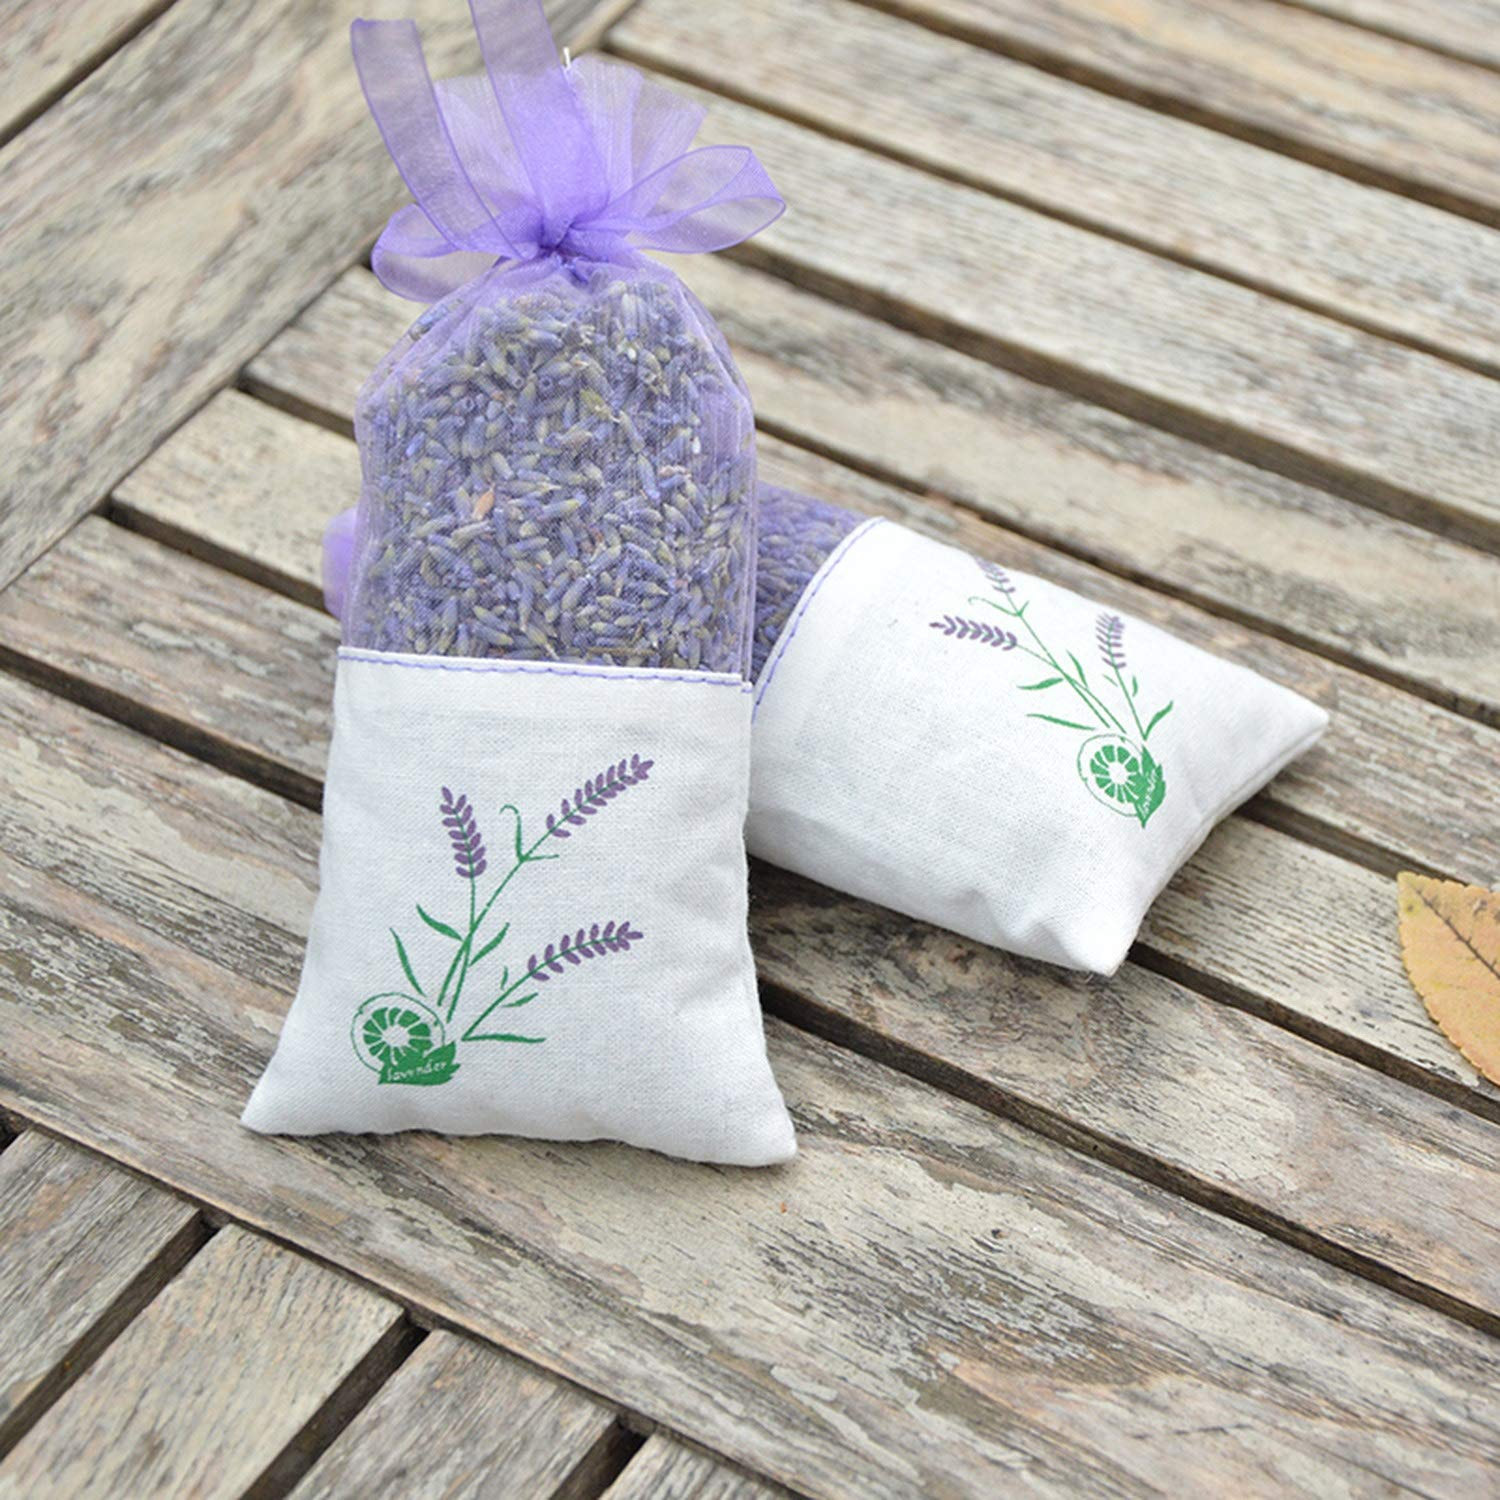 yuexianghui Natural Dried Flowers Lavender Bud Sachet Decorative Flower Aromatic Air Fresh Living Room Drawer,6 Pcs by yuexianghui (Image #3)